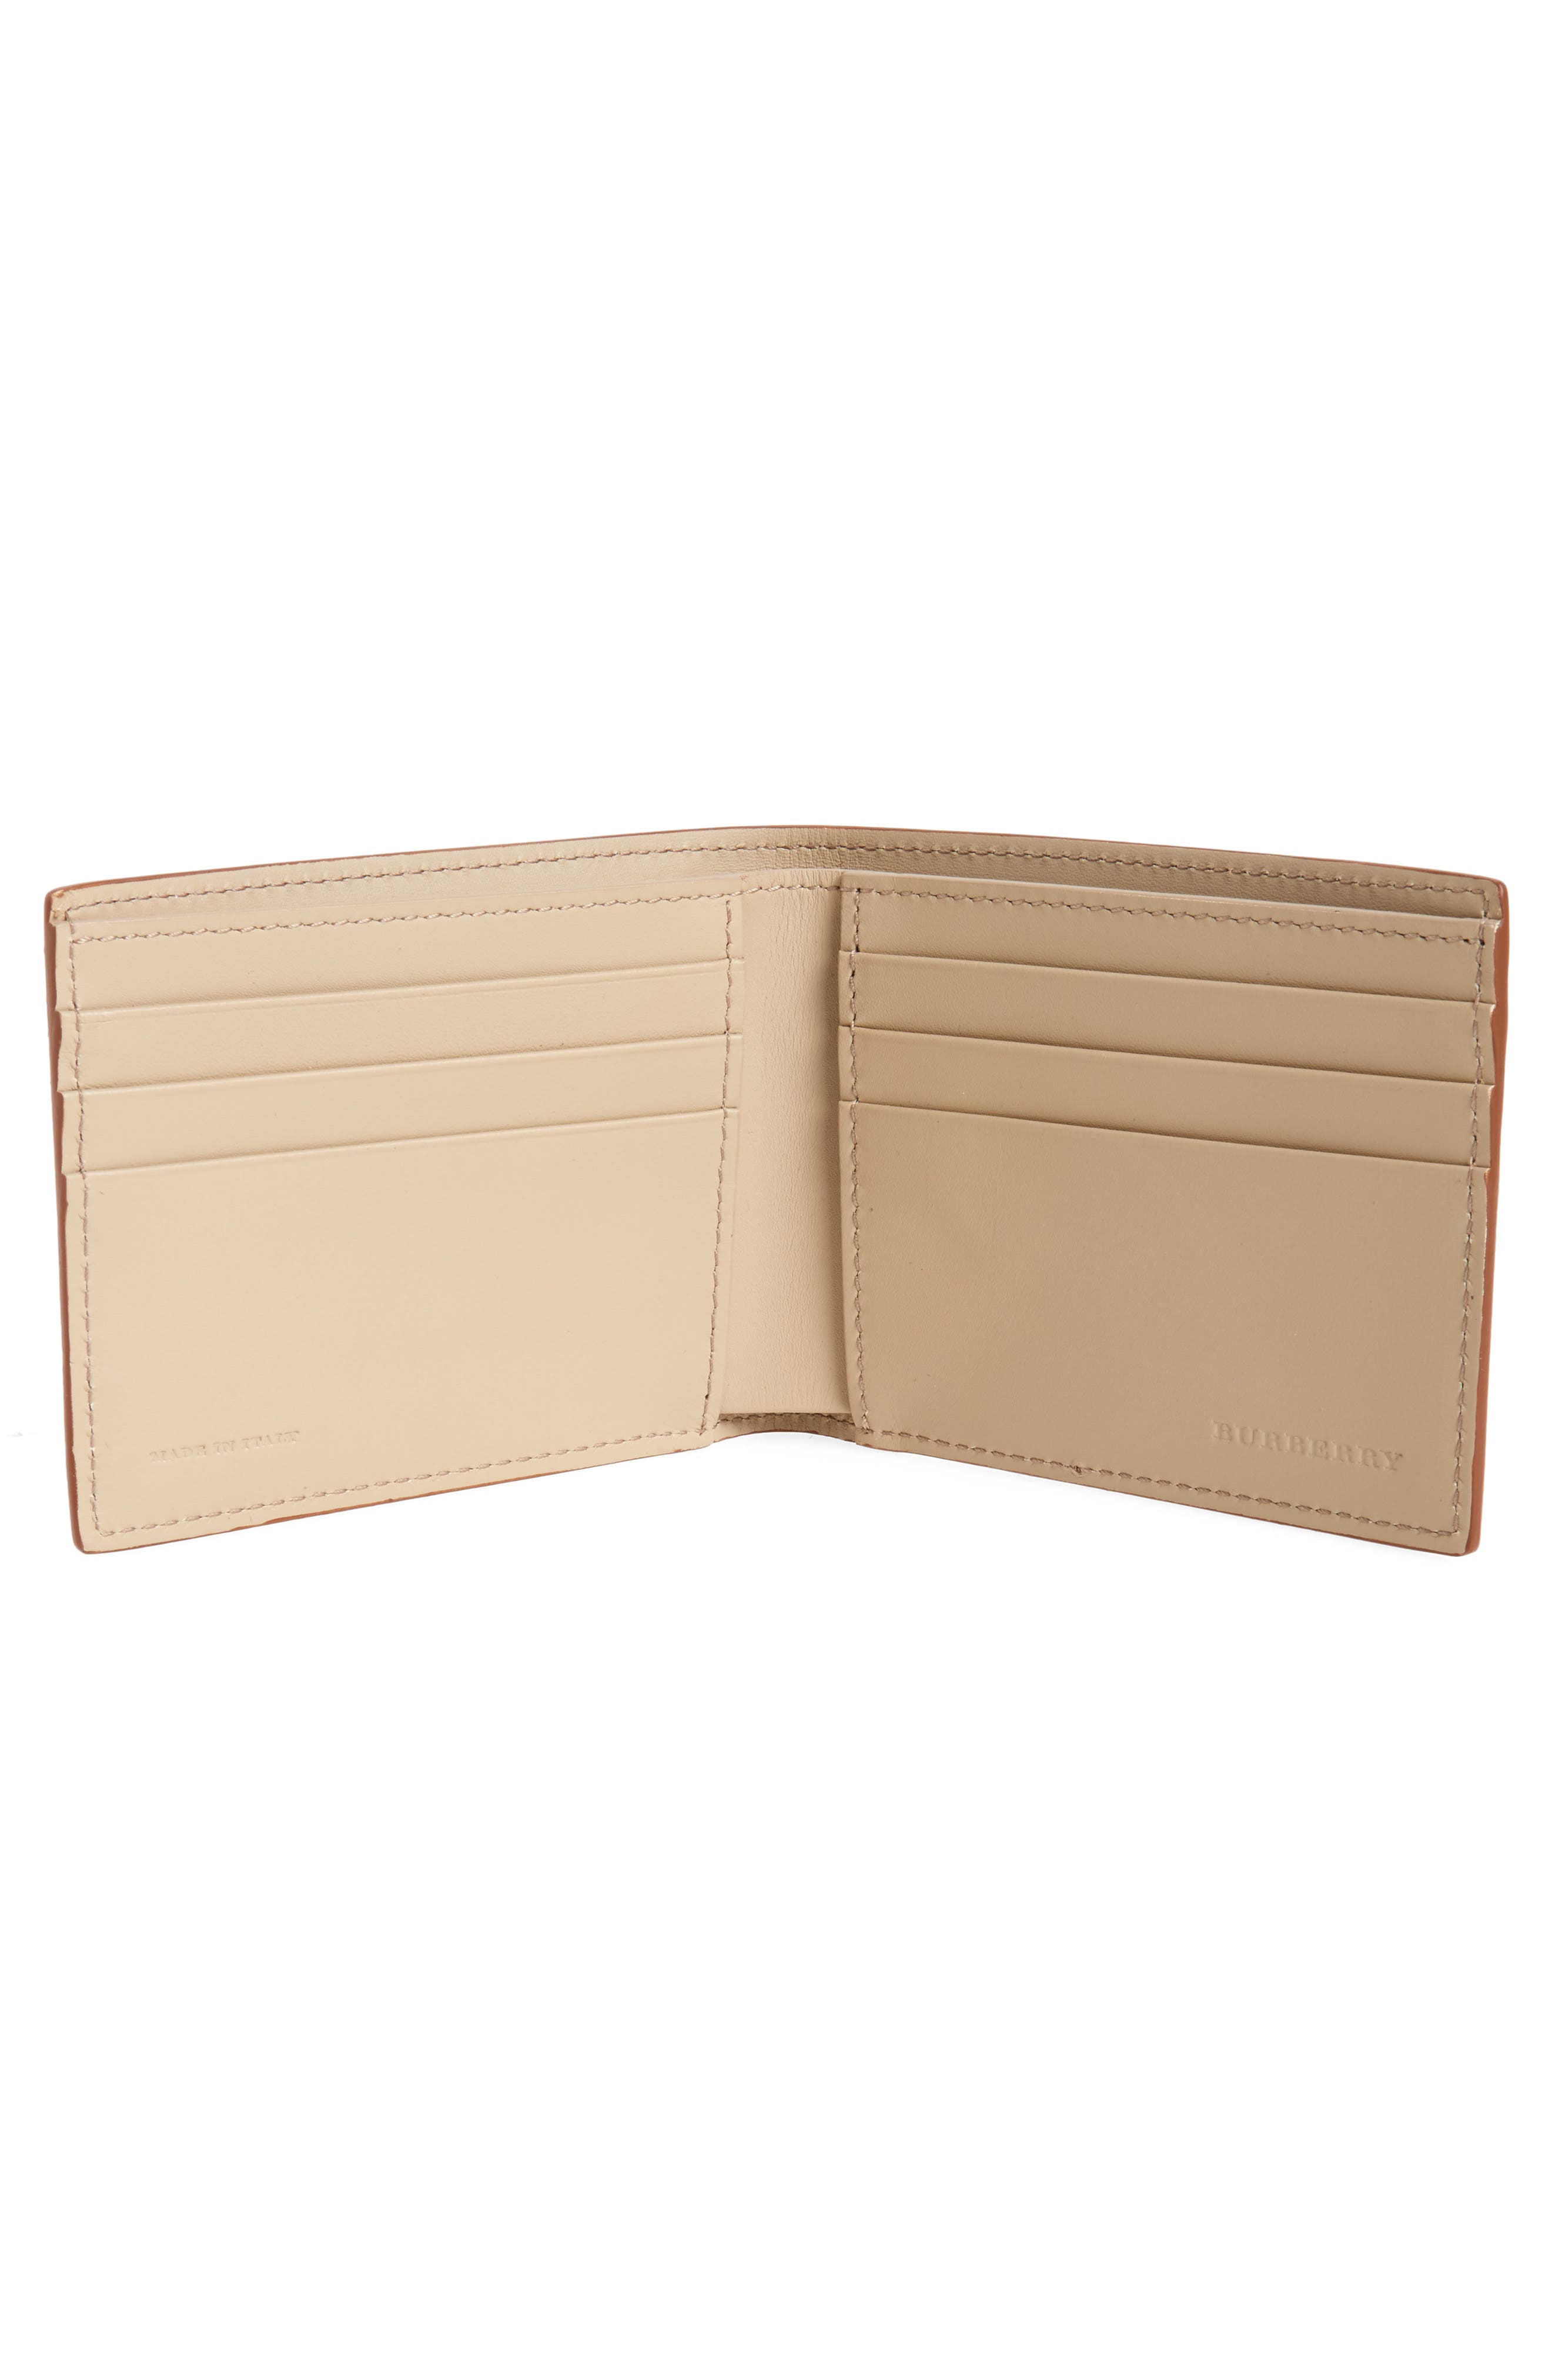 Leather Bifold Wallet,                             Alternate thumbnail 2, color,                             250